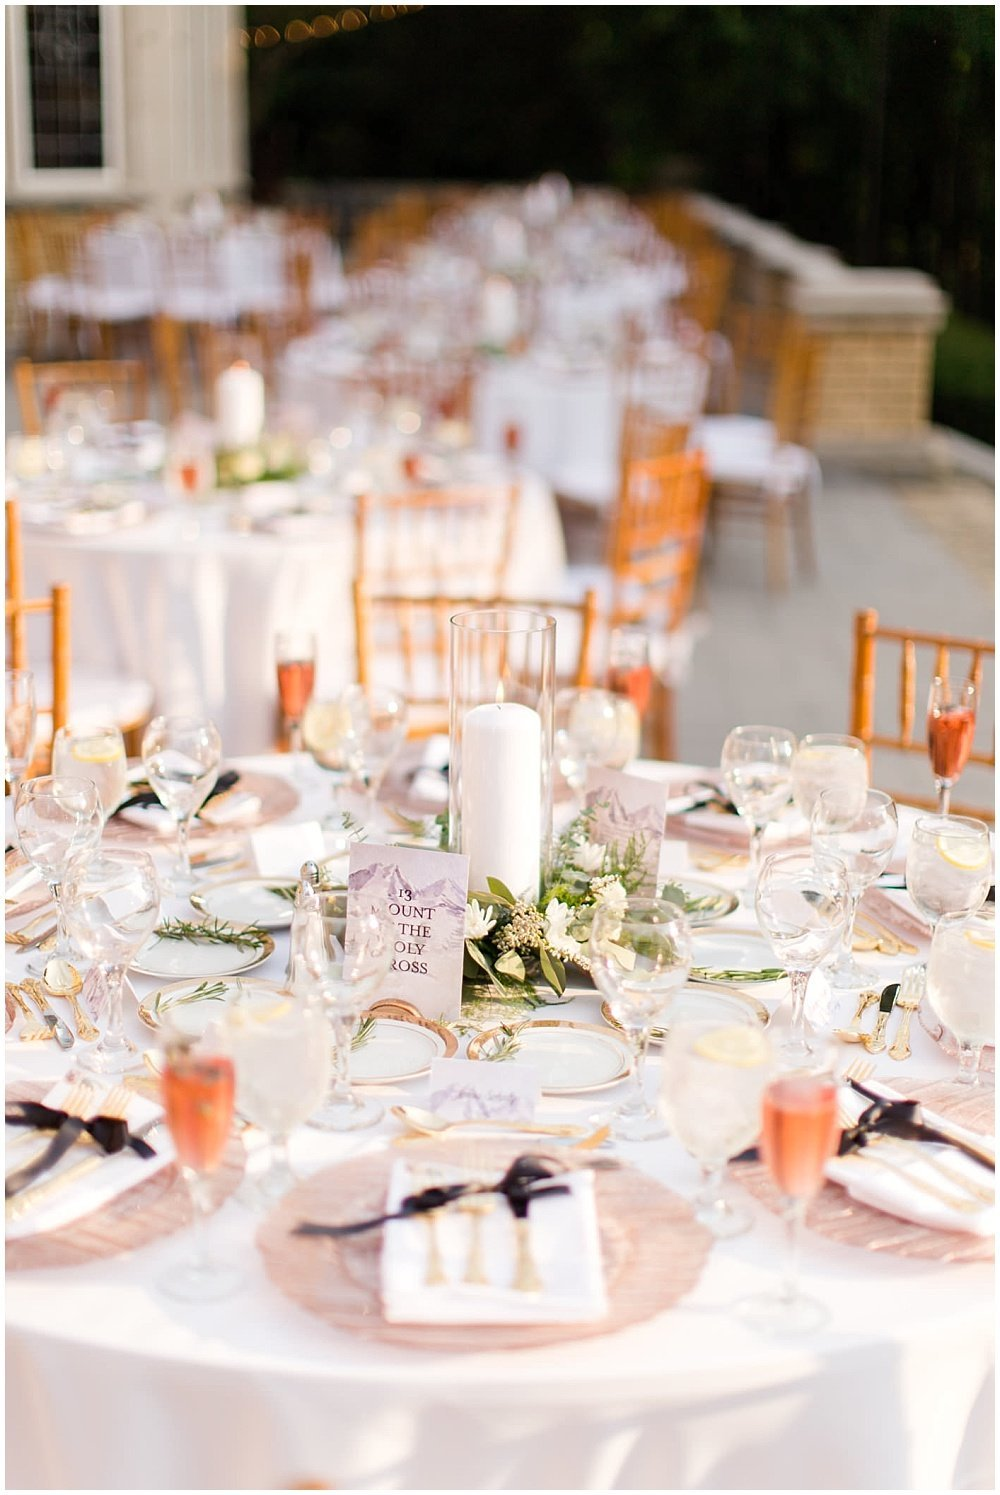 Summer-Outdoor-Terrace-Laurel-Hall-Indianapolis-Wedding-Danielle-Harris-Photography- Jessica-Dum-Wedding-Coordination-photo__0023